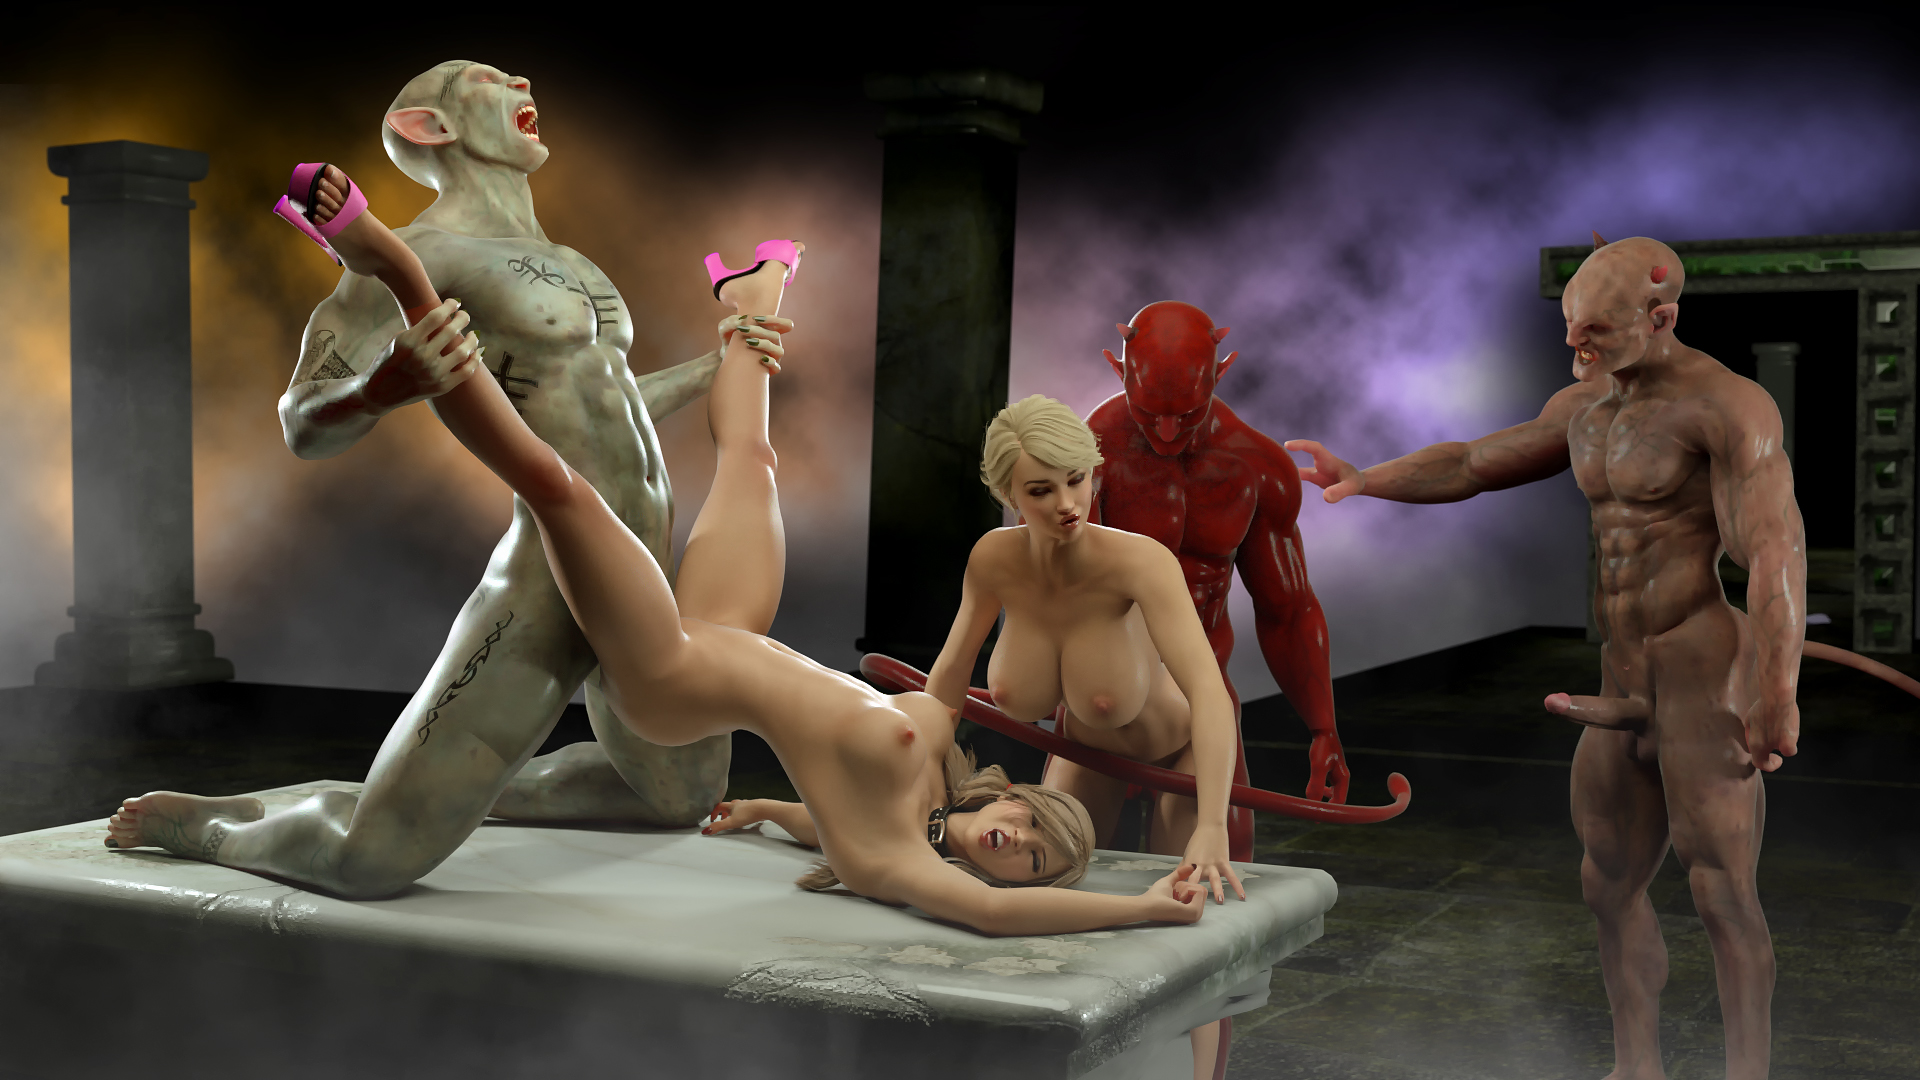 Sex 3d demons nudes scenes